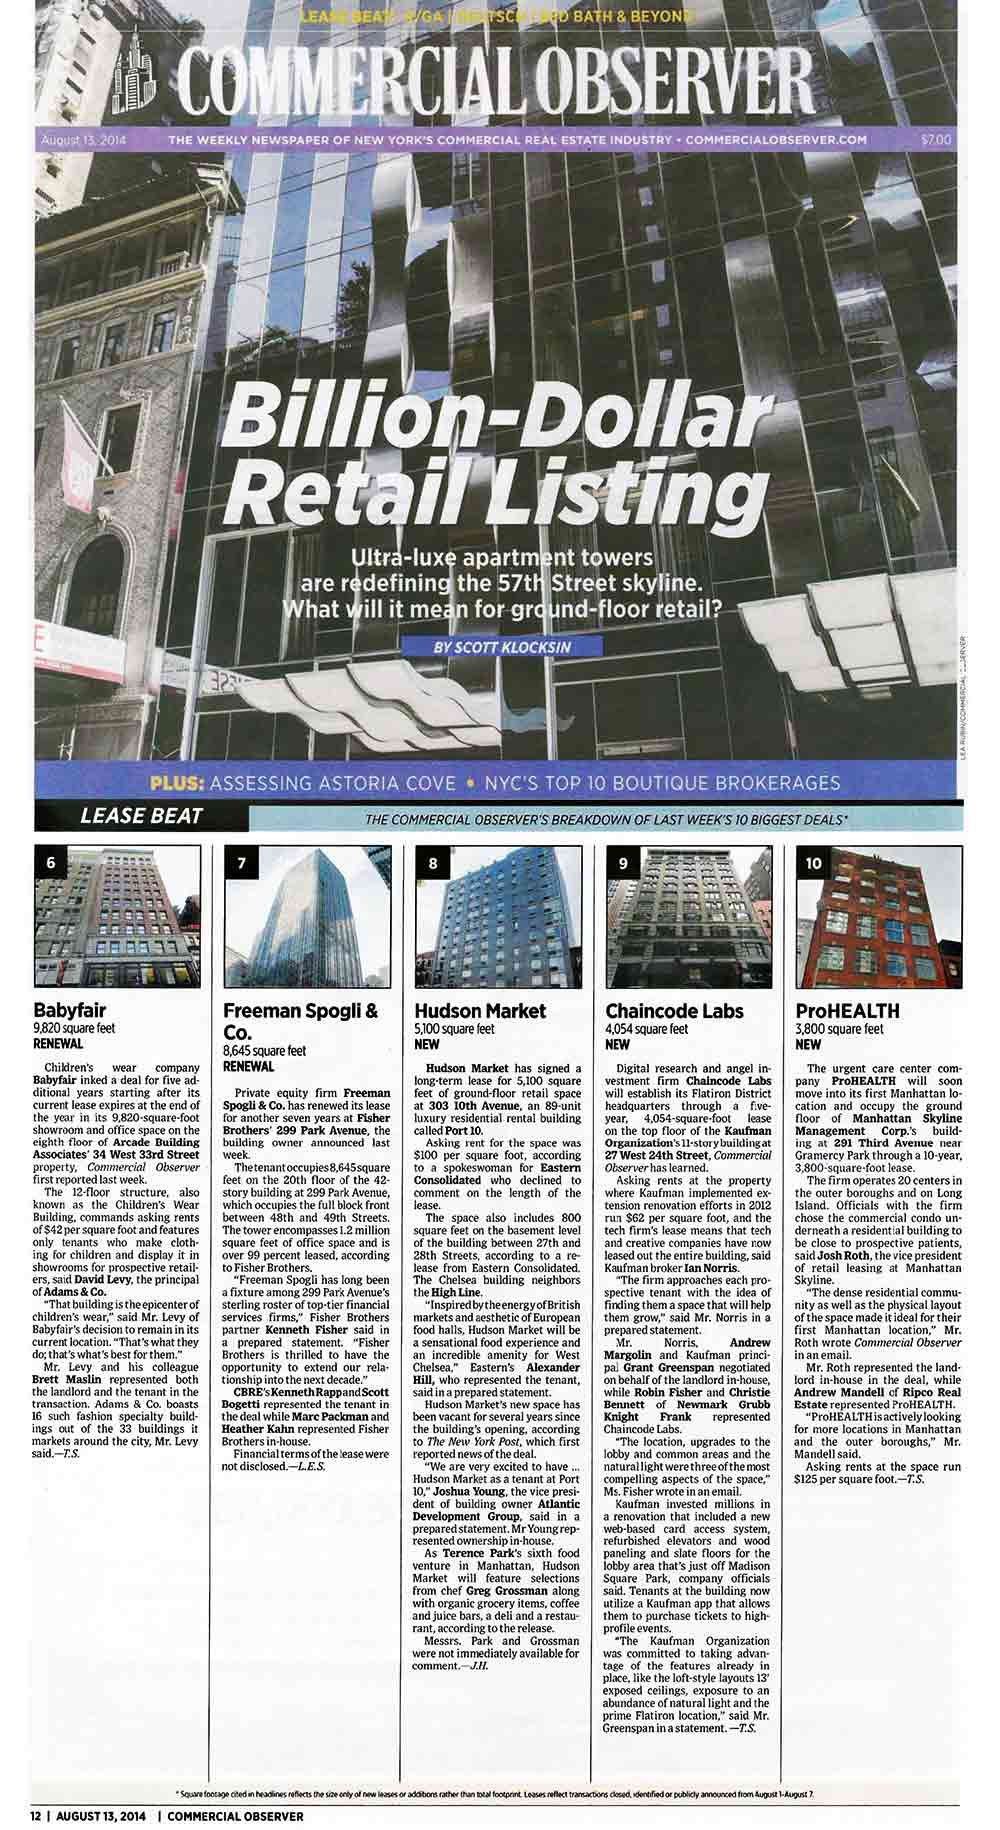 Commercial-Observer---Lease-Beat---8.13.14